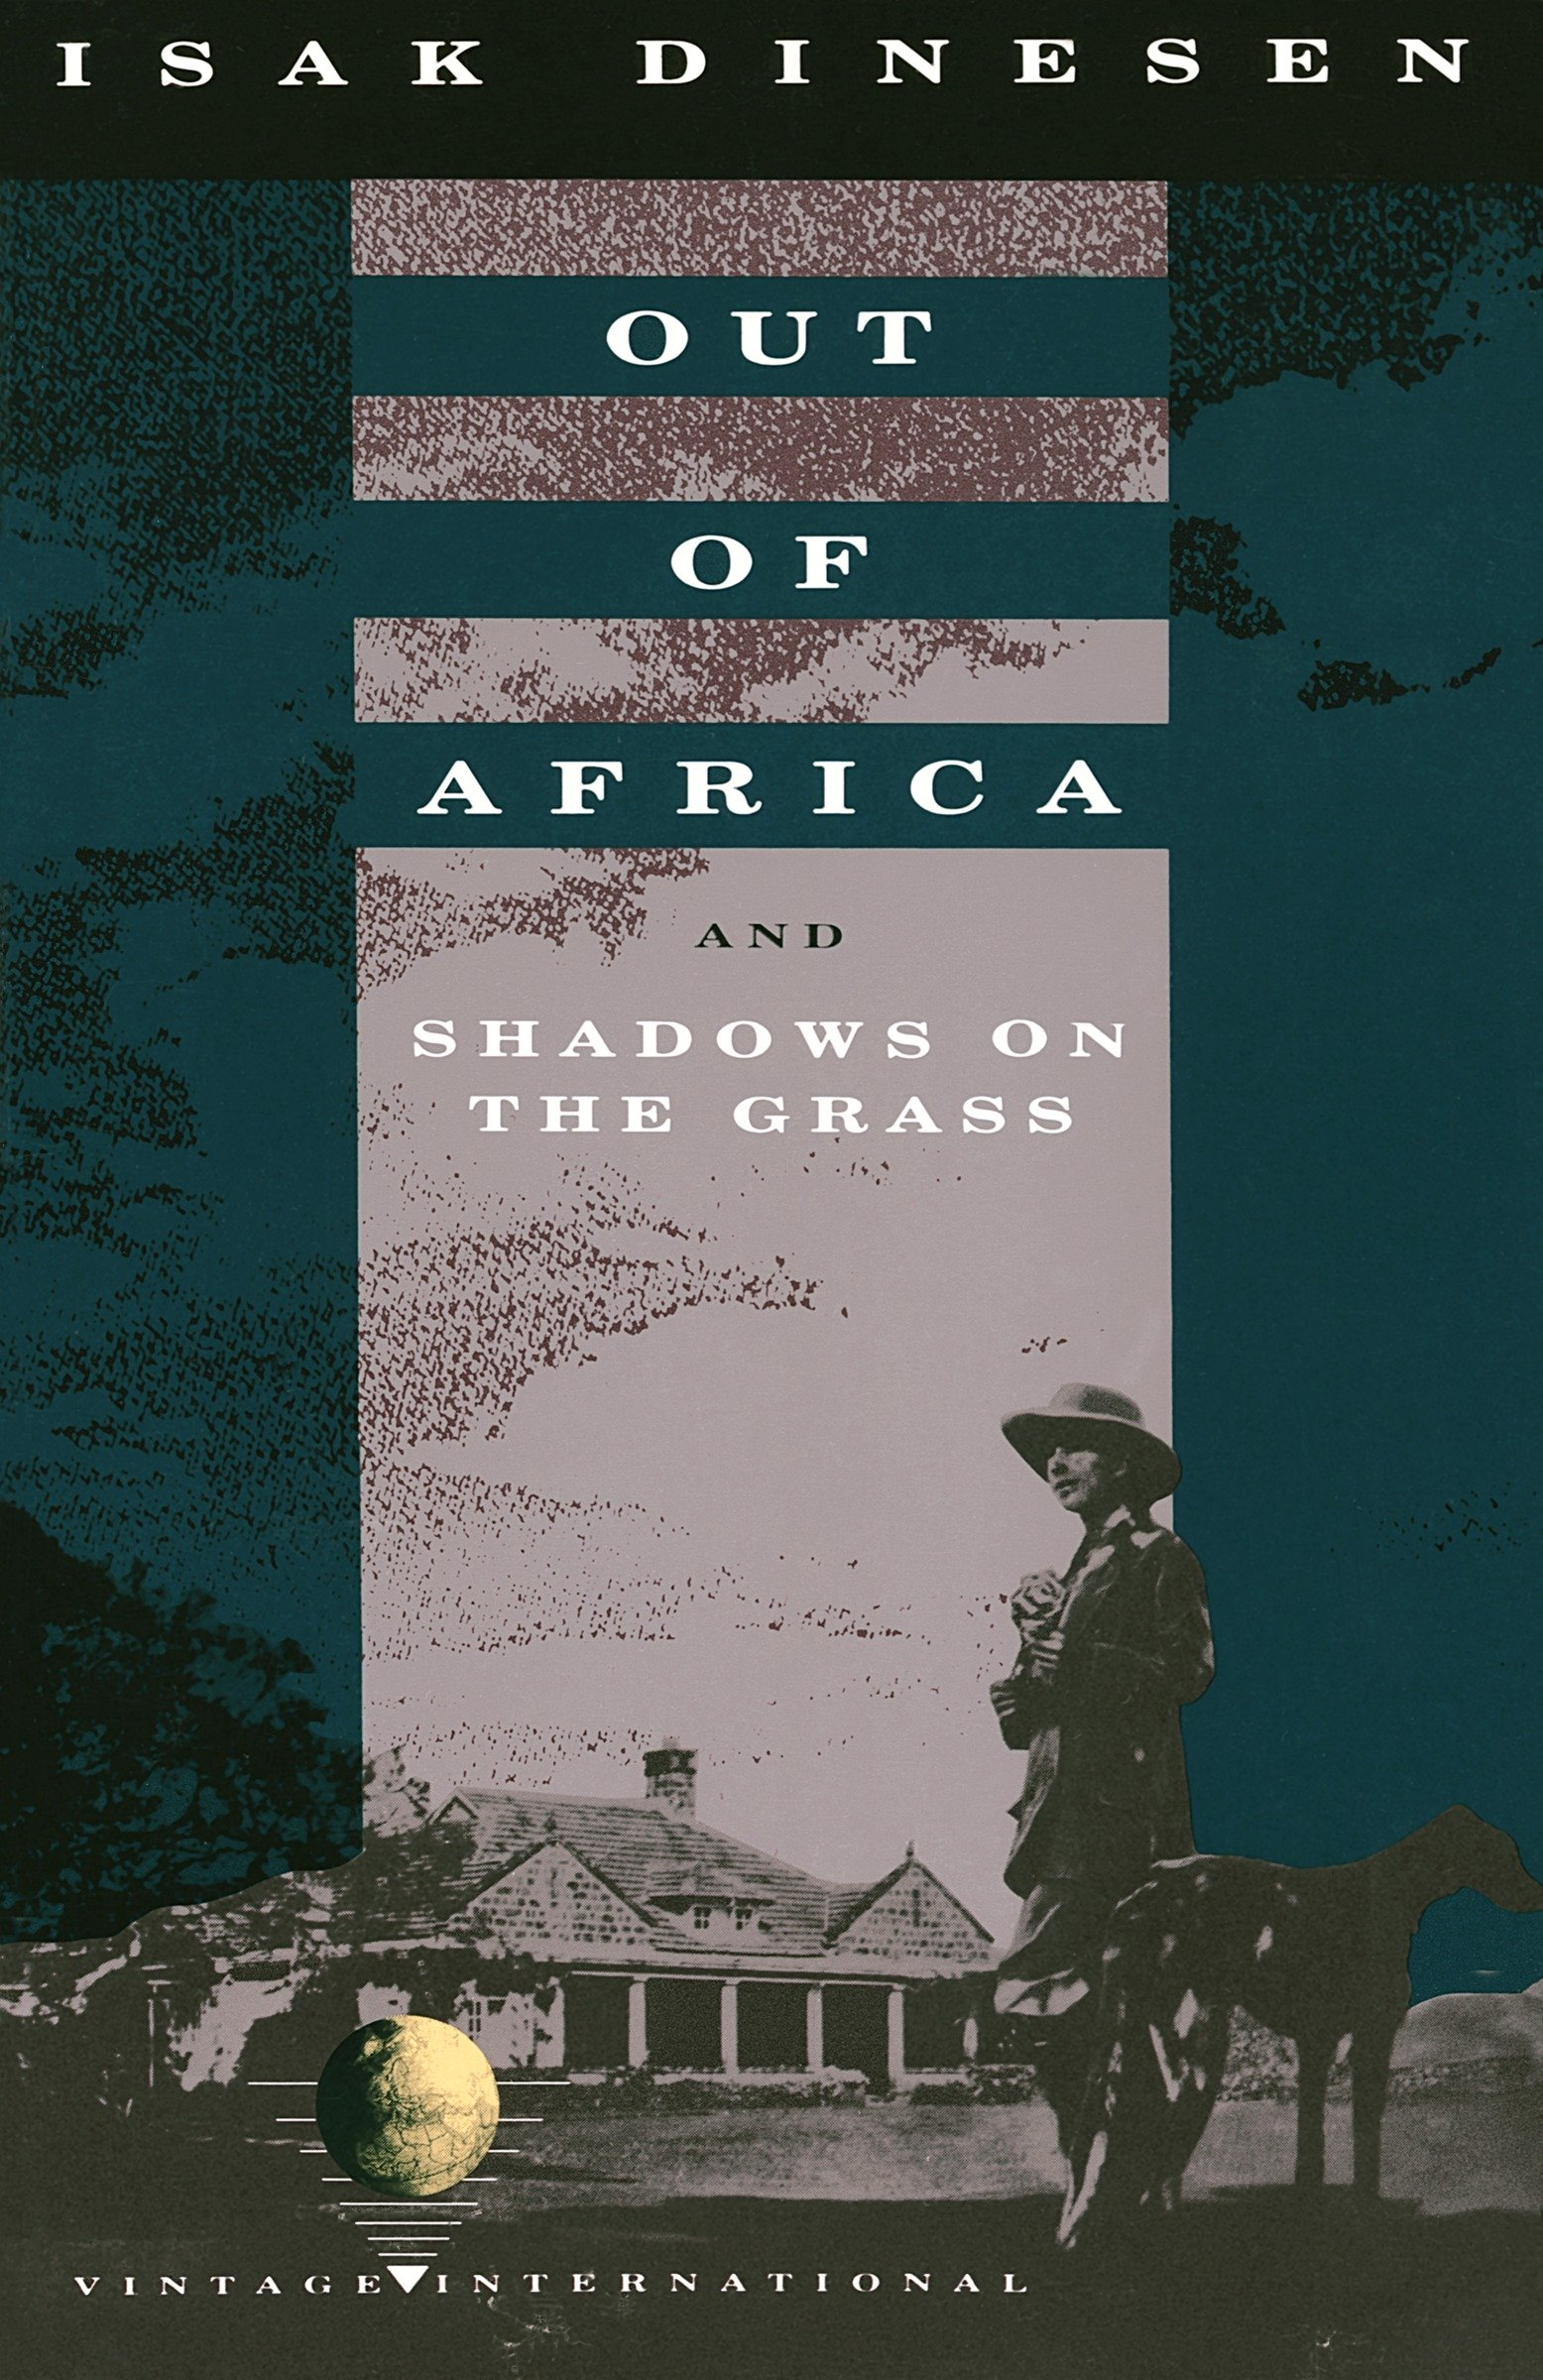 Out of Africa [electronic resource] : and Shadows on the Grass